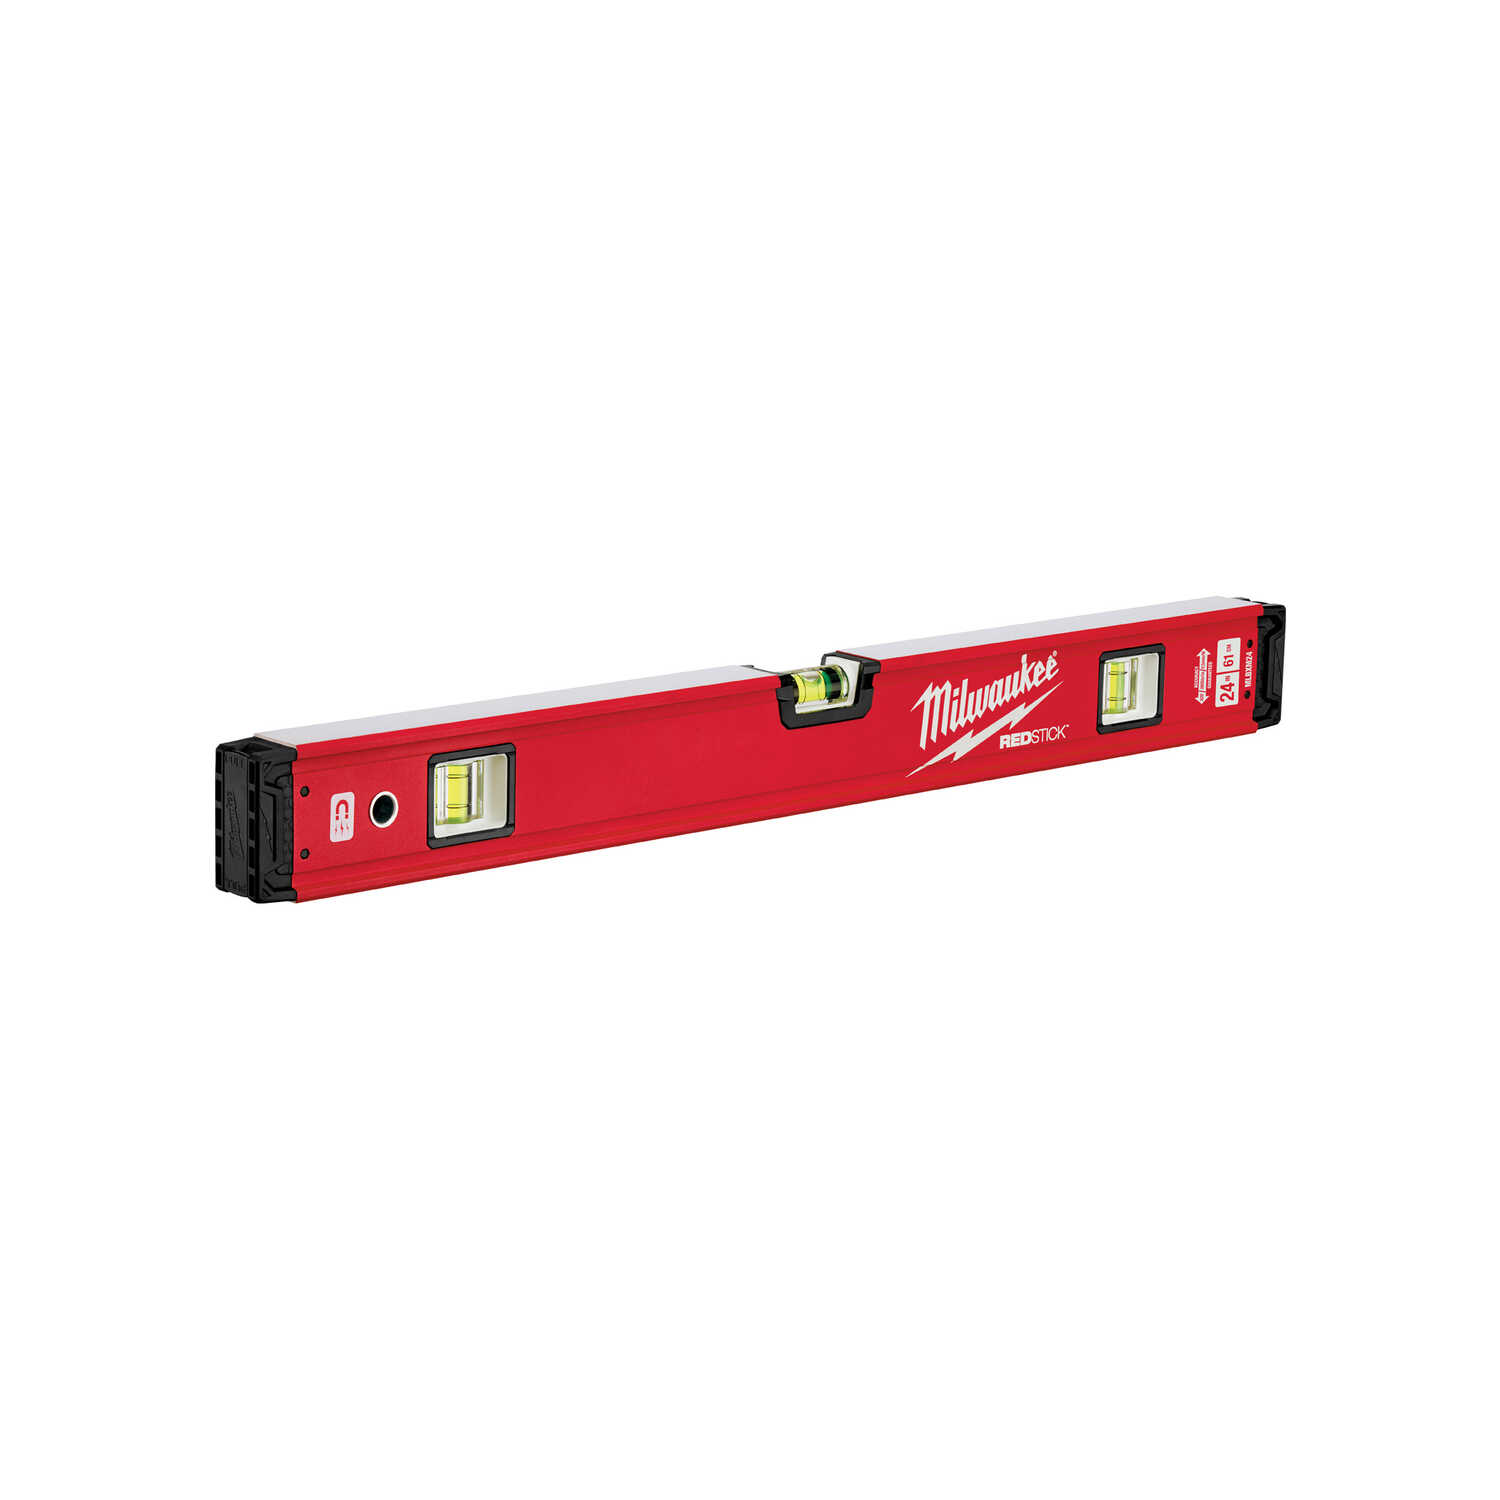 Milwaukee  REDSTICK  24 in. Metal  Magnetic Box  Level  3 vial